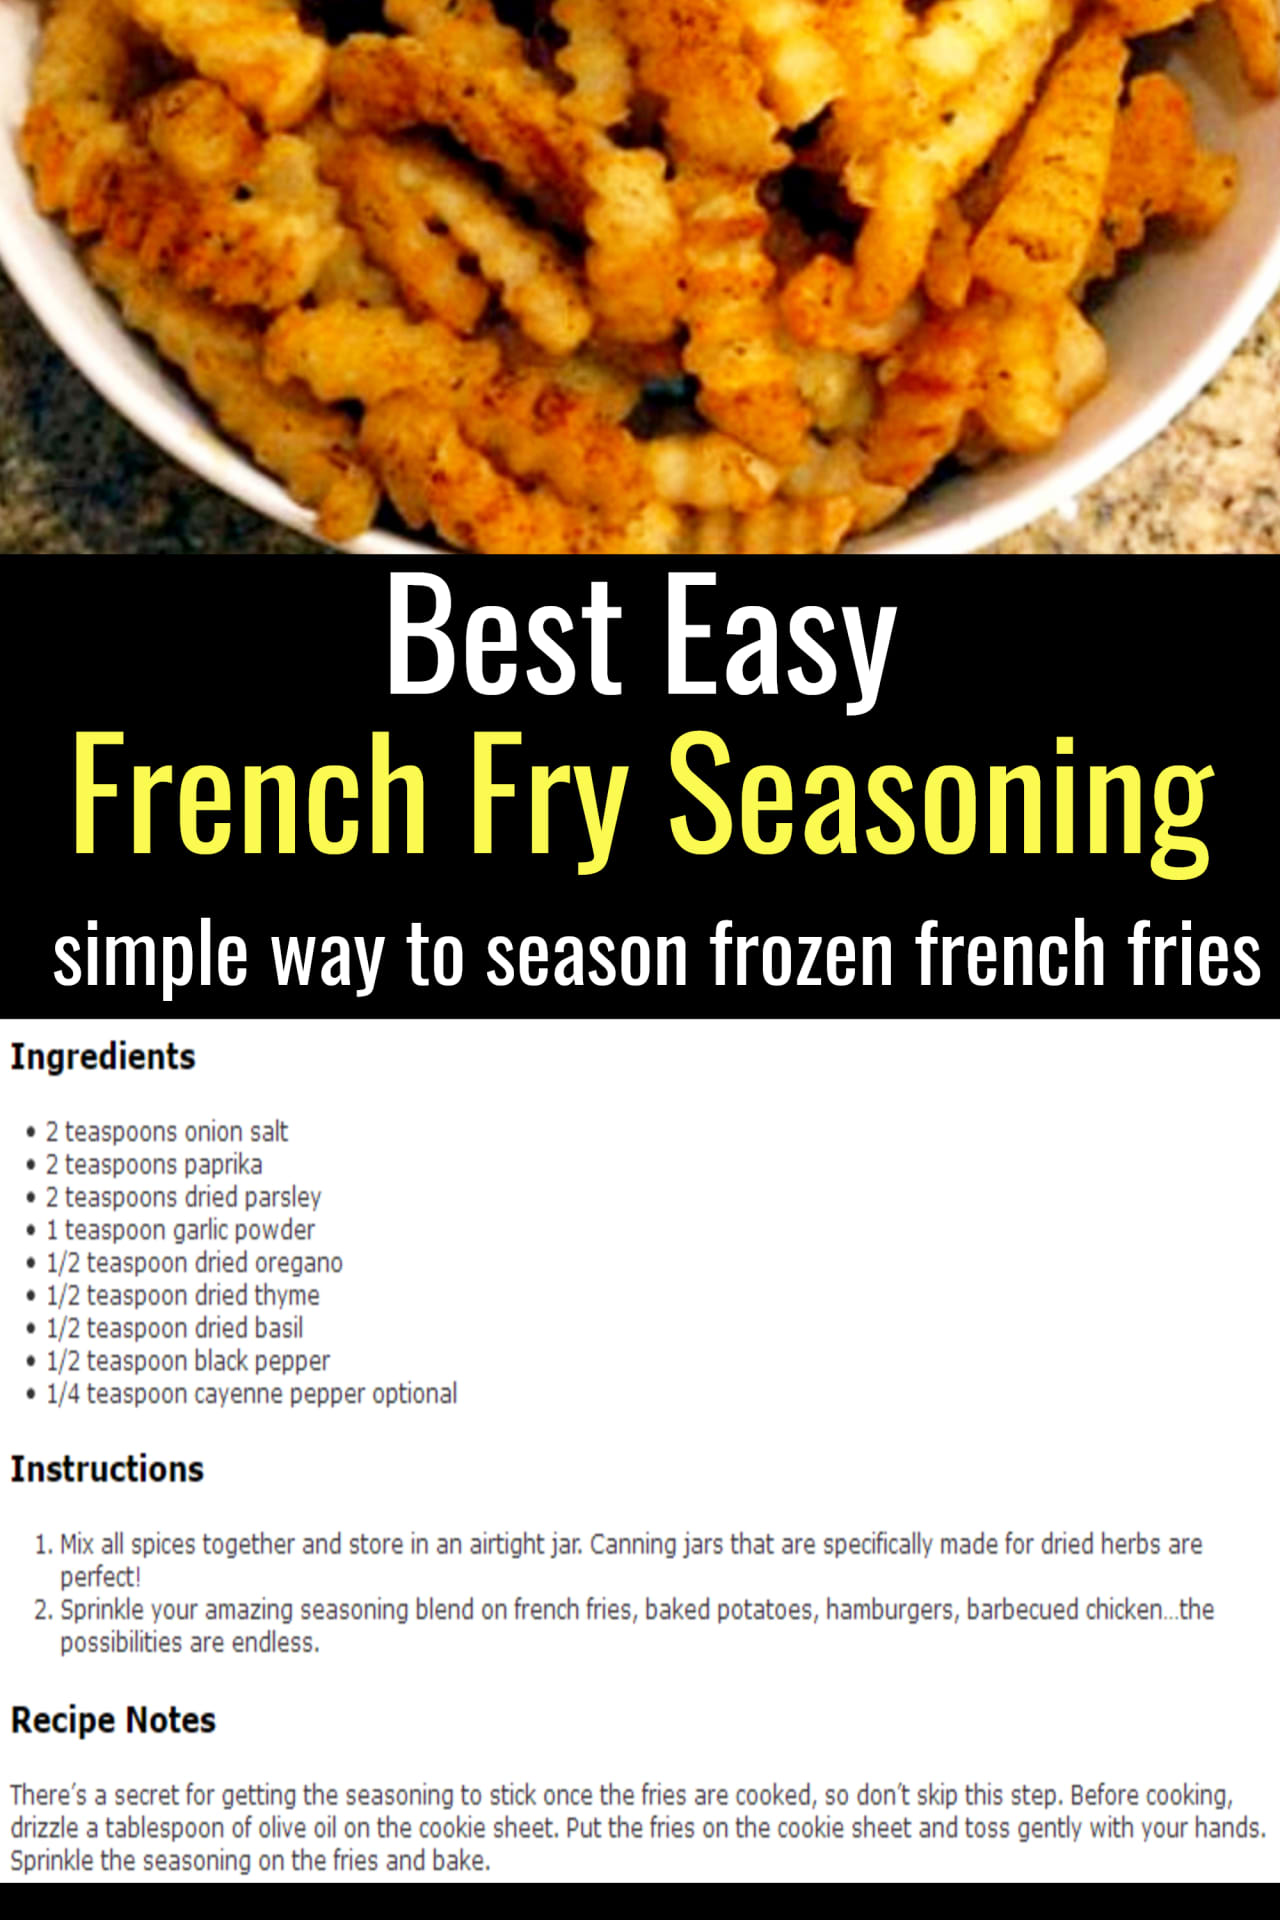 best easy french fry seasoning - recipe ideas for the family with picky eater kids